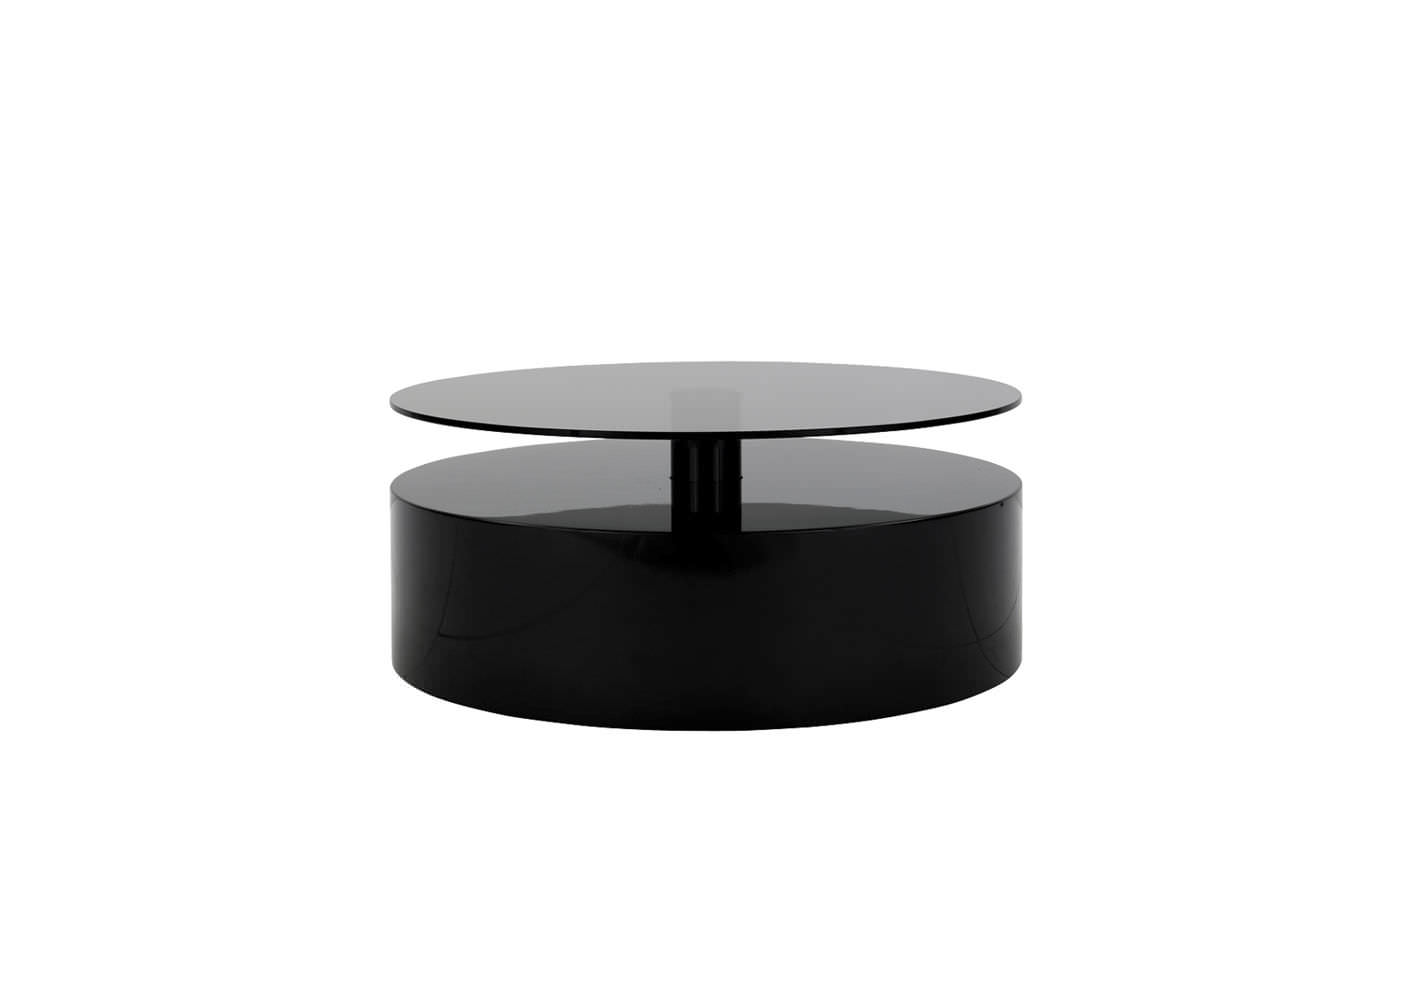 Glass Round Side Table Side Table Contemporary Glass Round Parrish Minotti